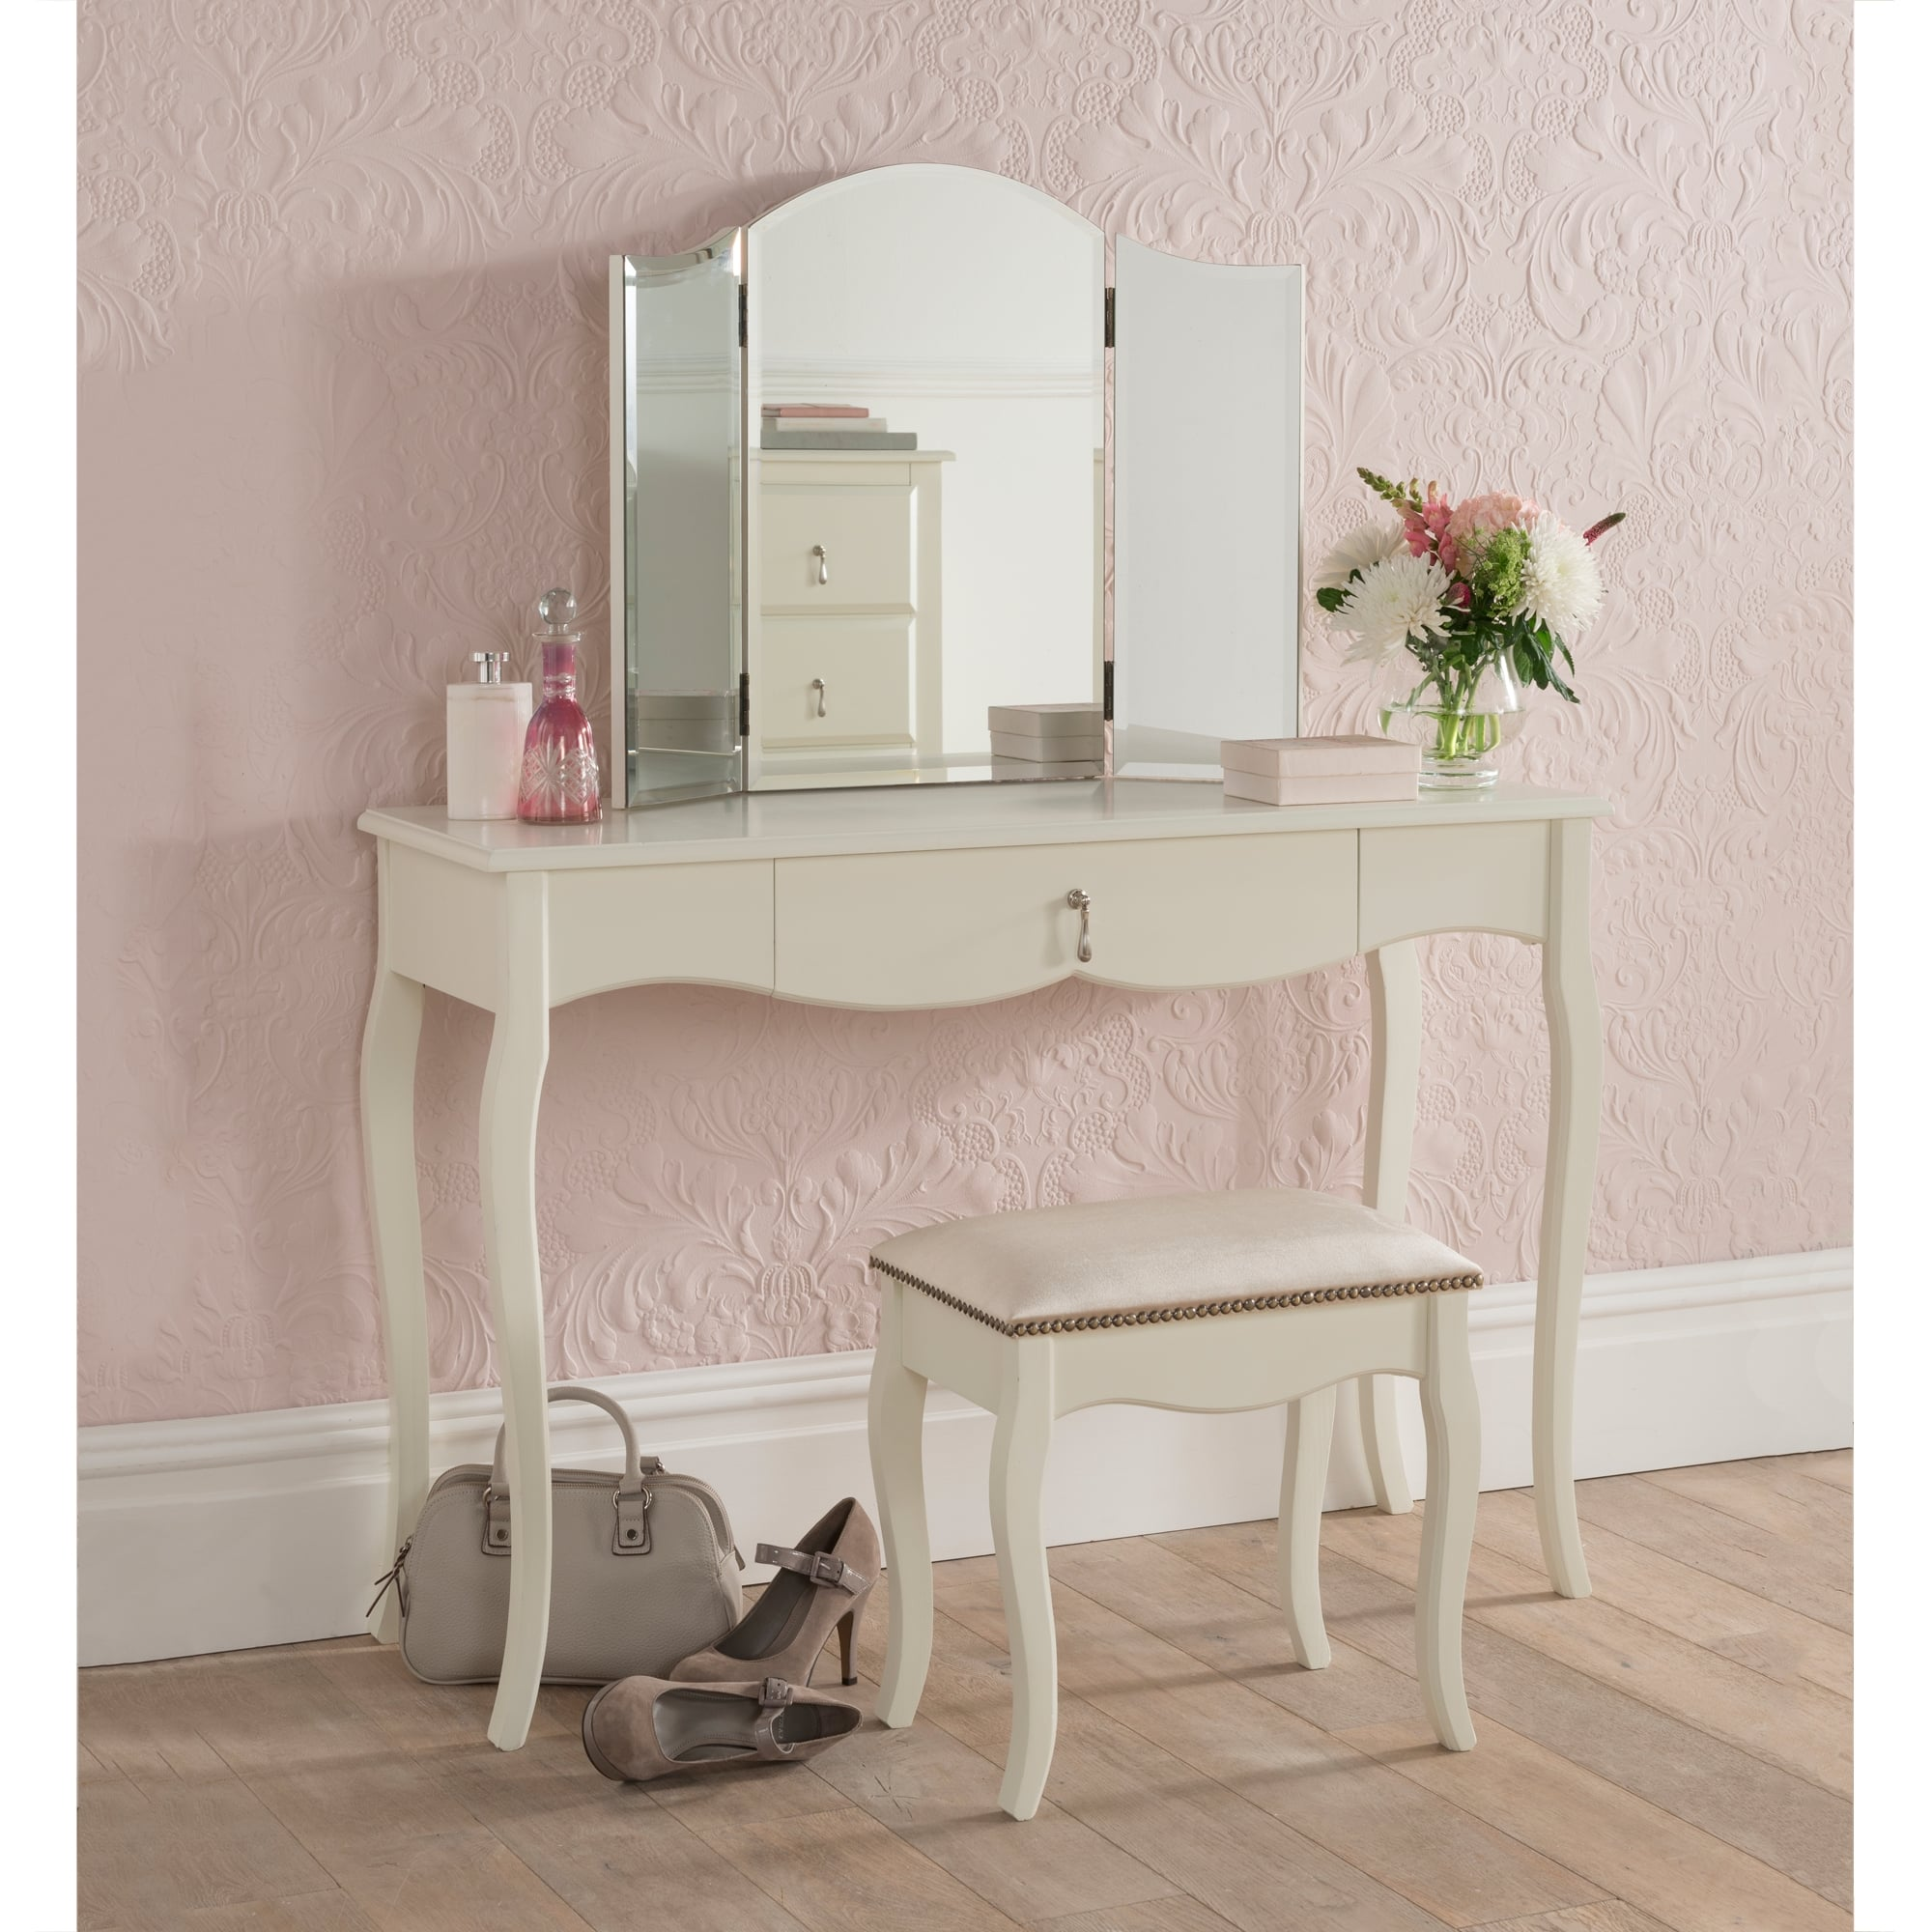 Antique French Style Dressing Table Set Bedroom